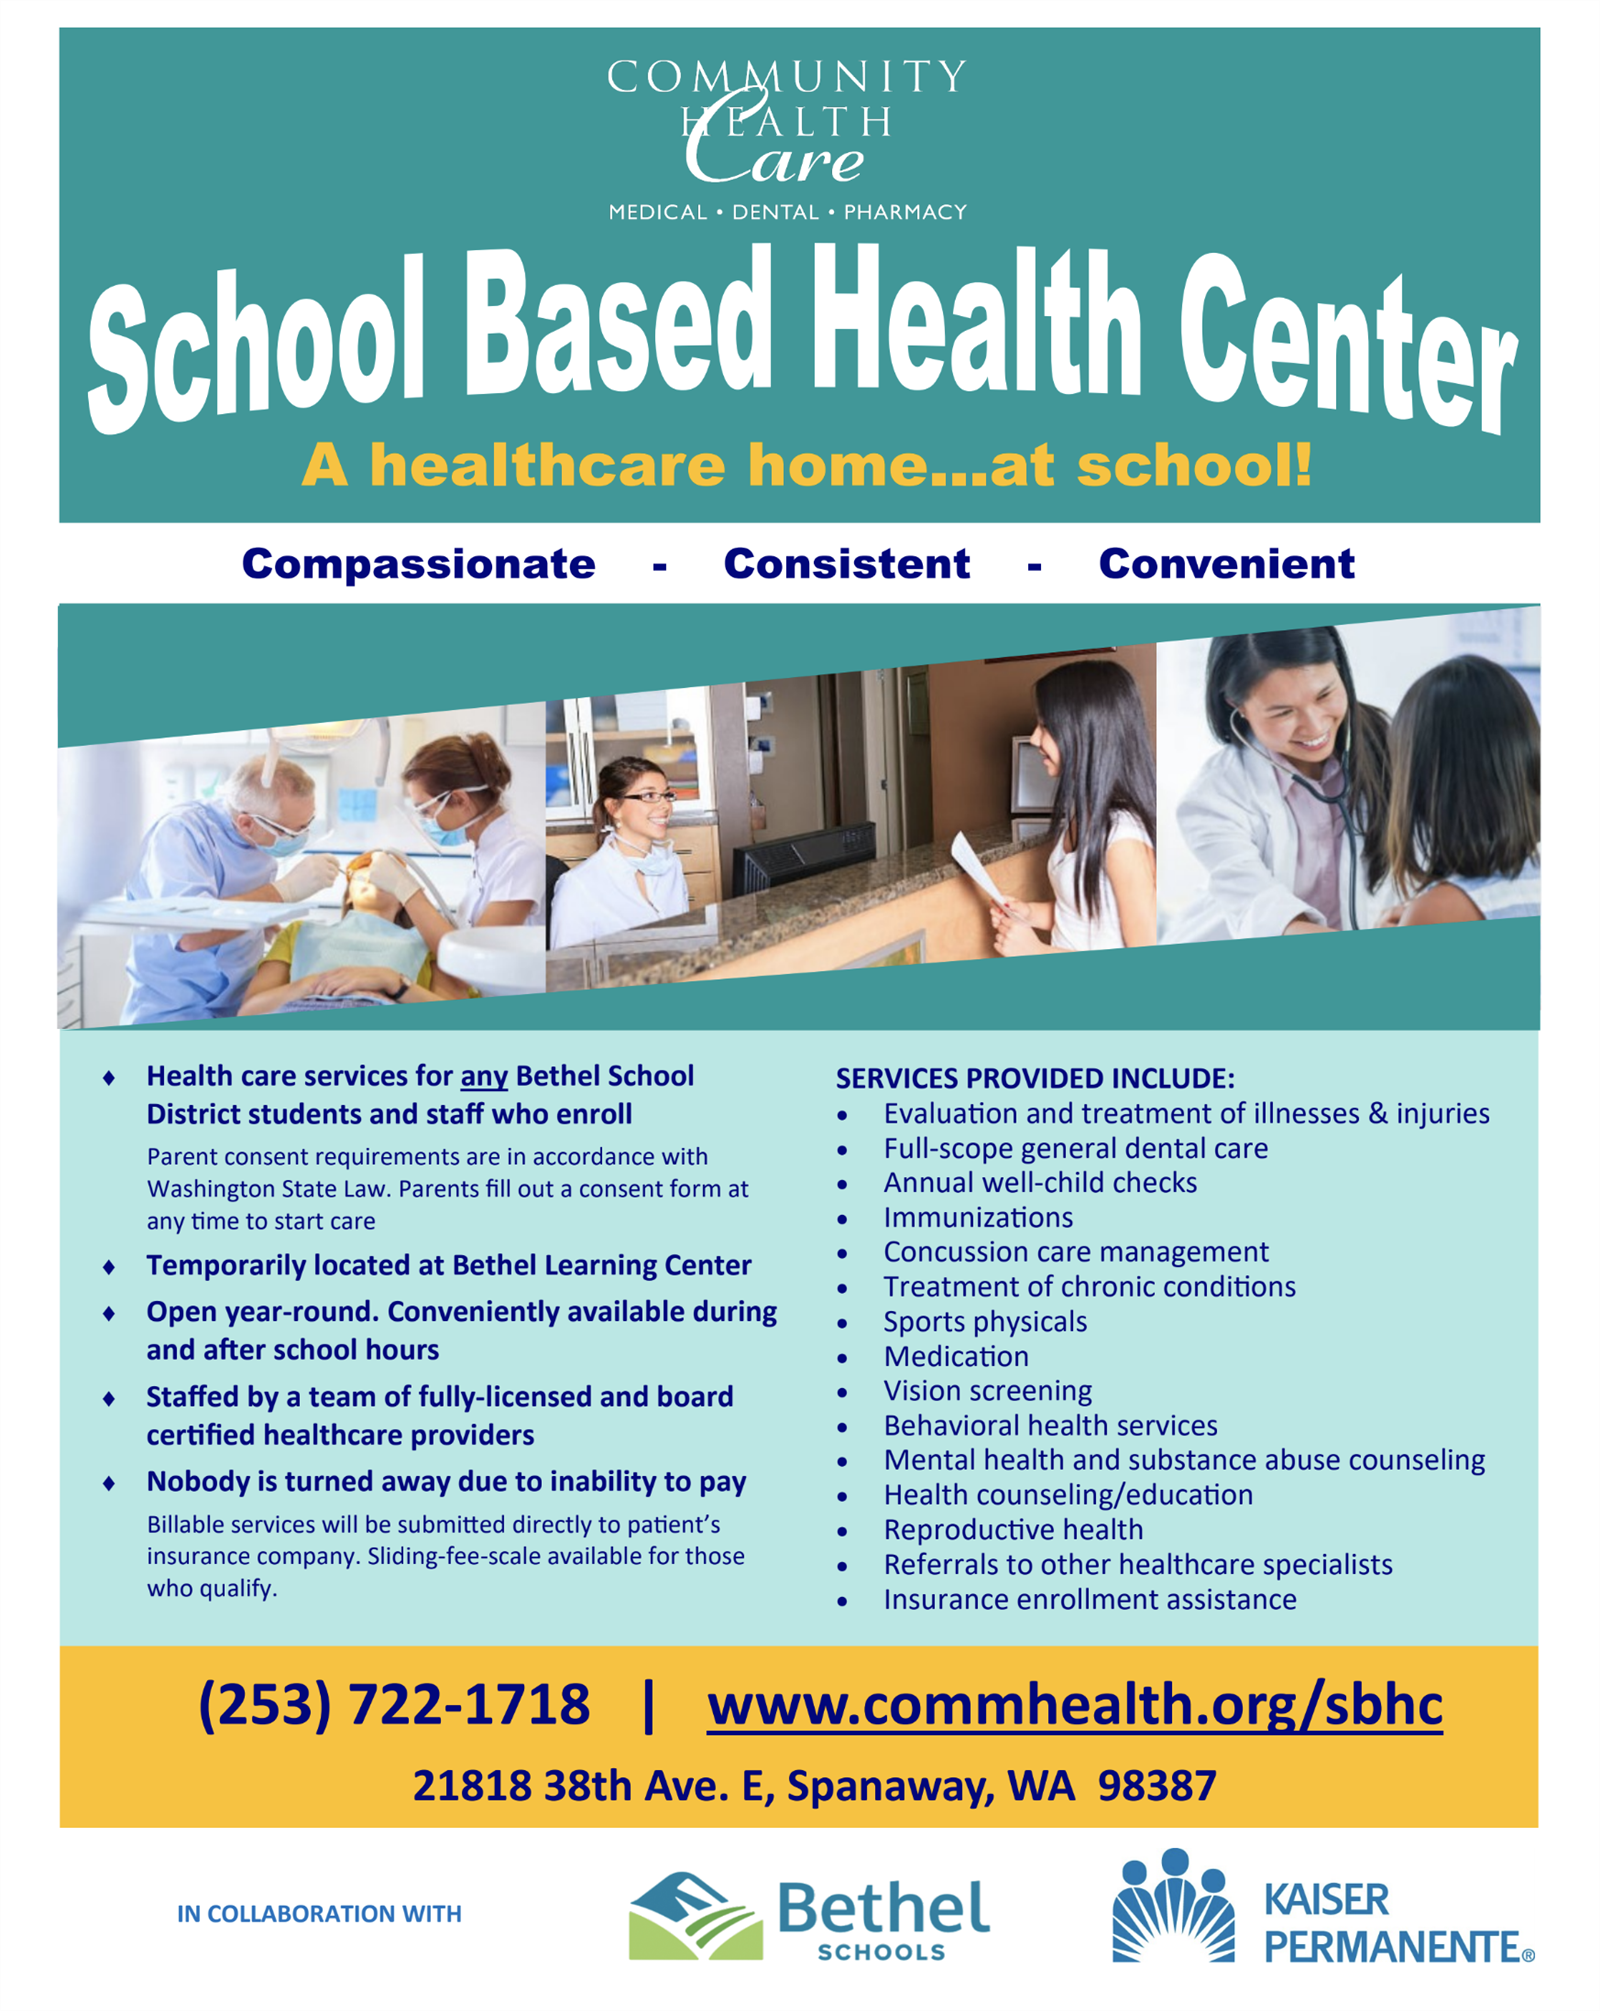 Flier for Community Health Care school based clinic